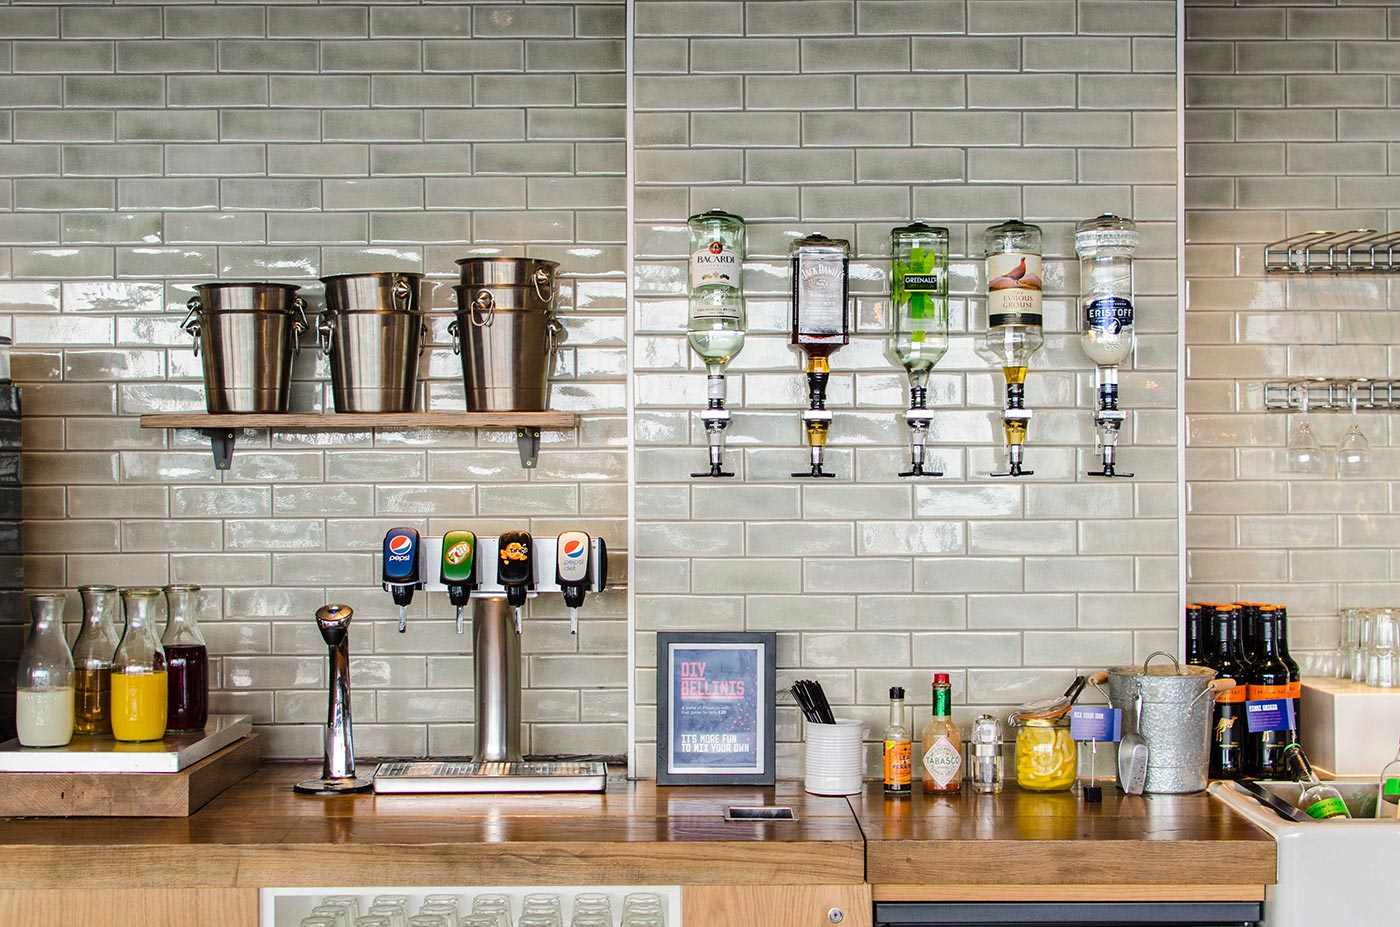 Gatwick Airport's My Lounge bar offers a wide range of drinks for passengers